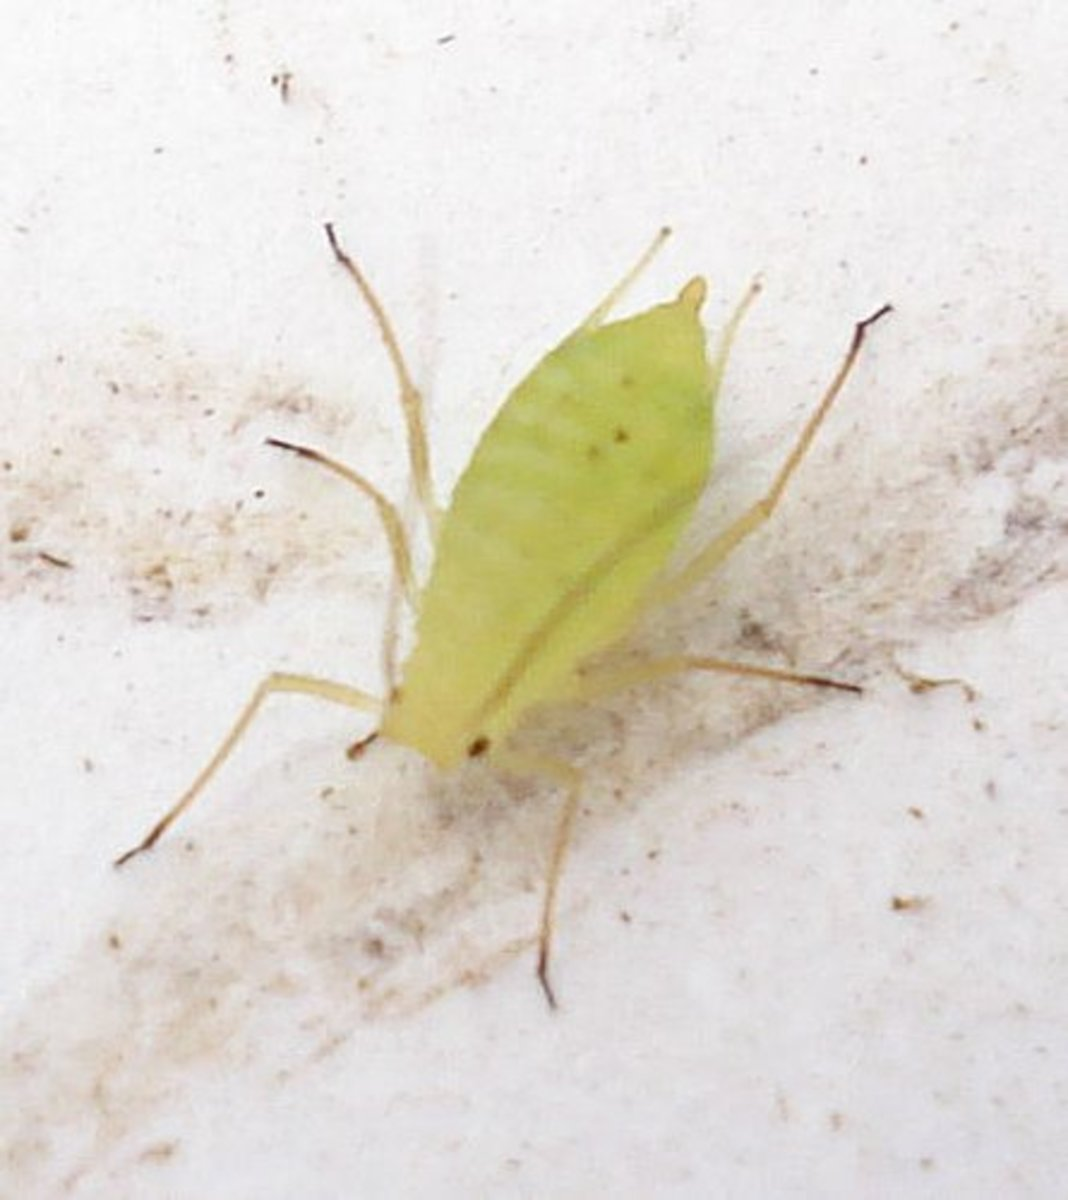 Aphid.